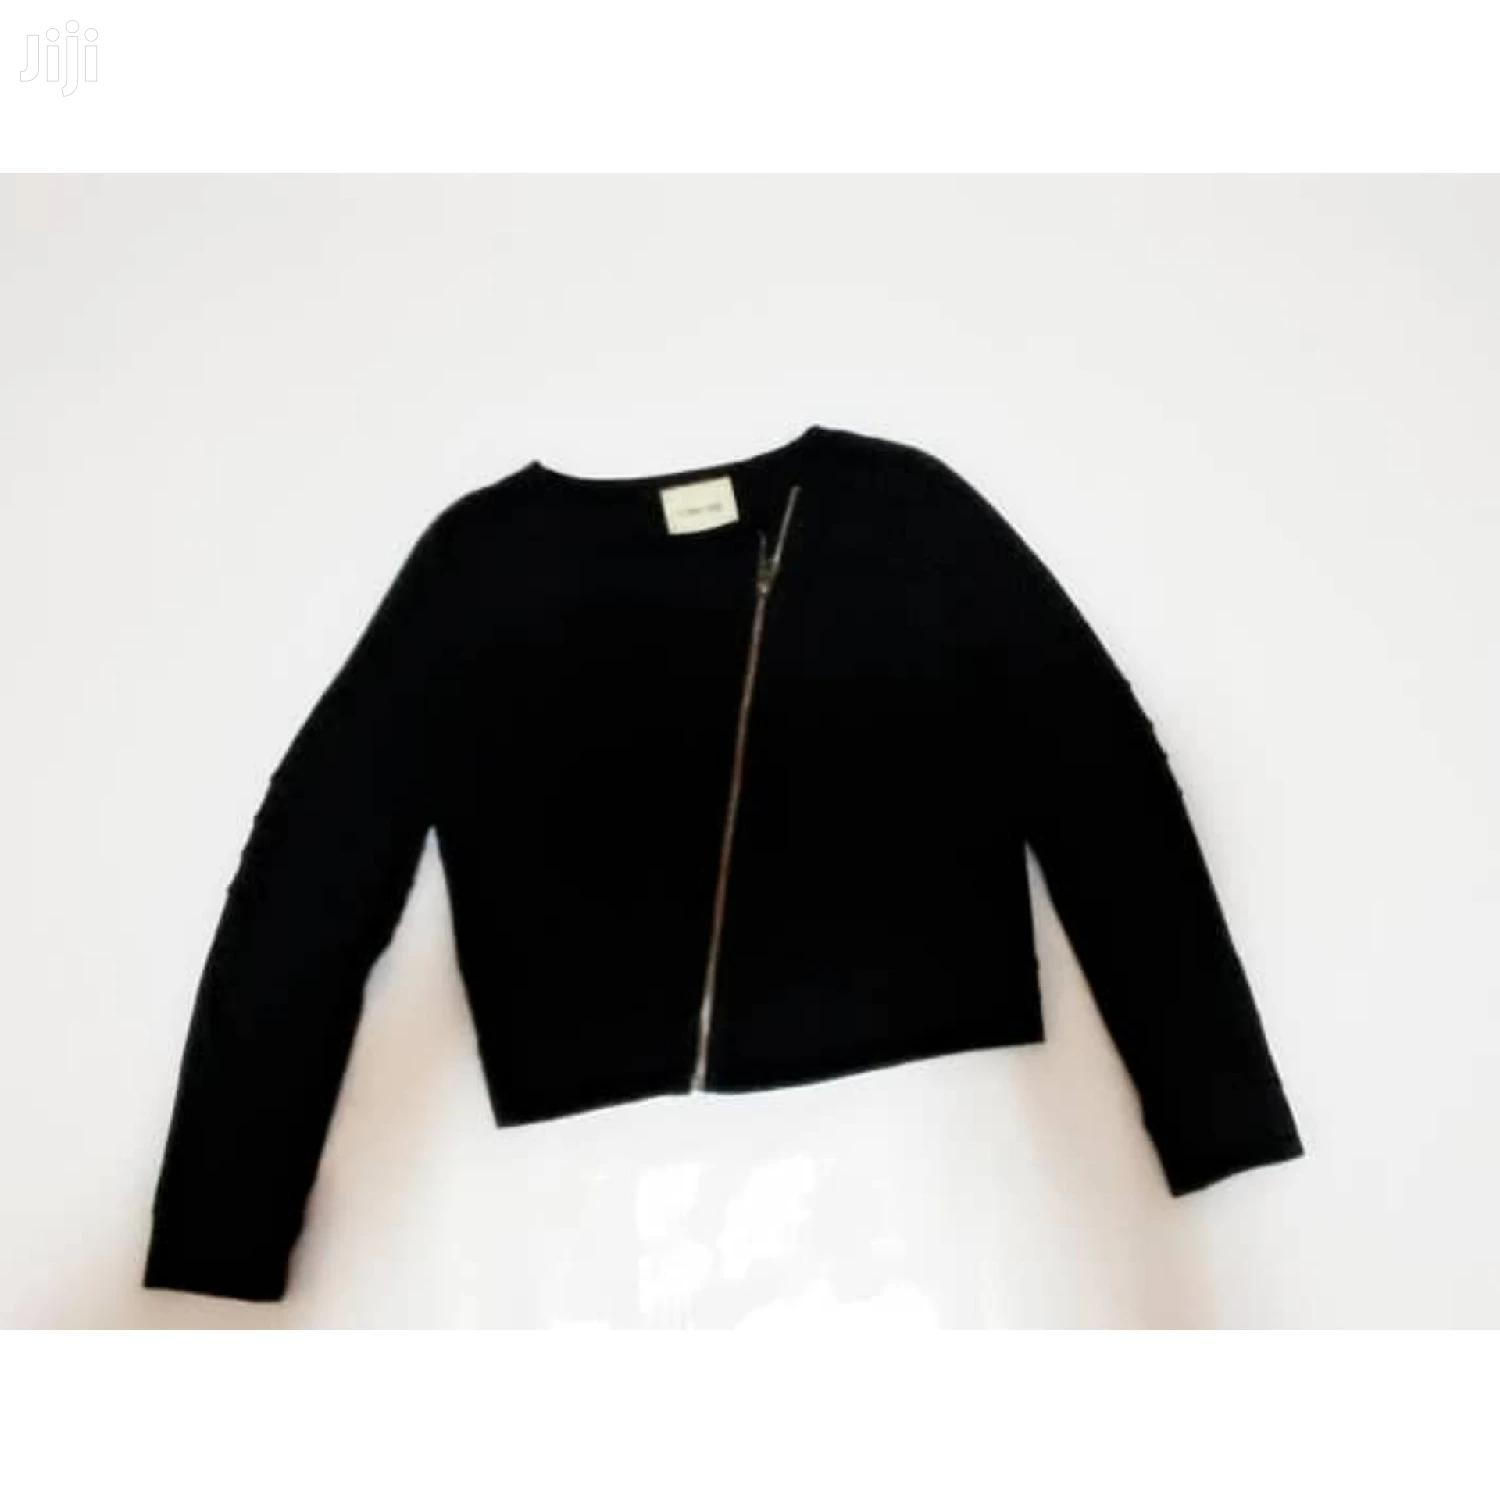 Archive: Zipped Cropped Top